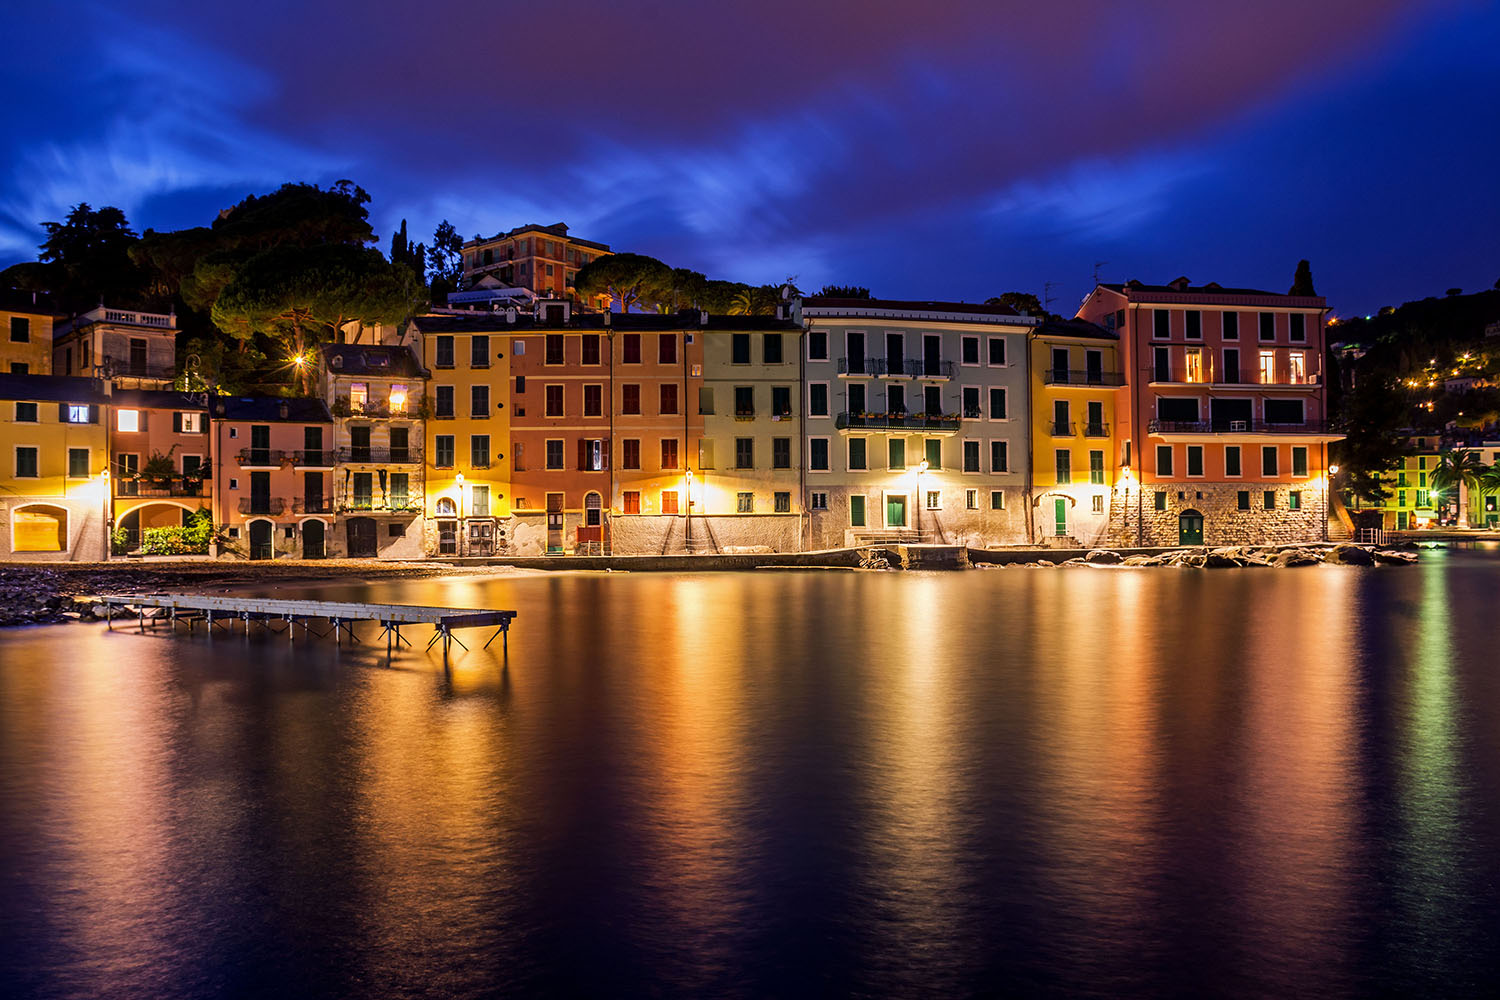 The blue hour of San Michele di Pagana...